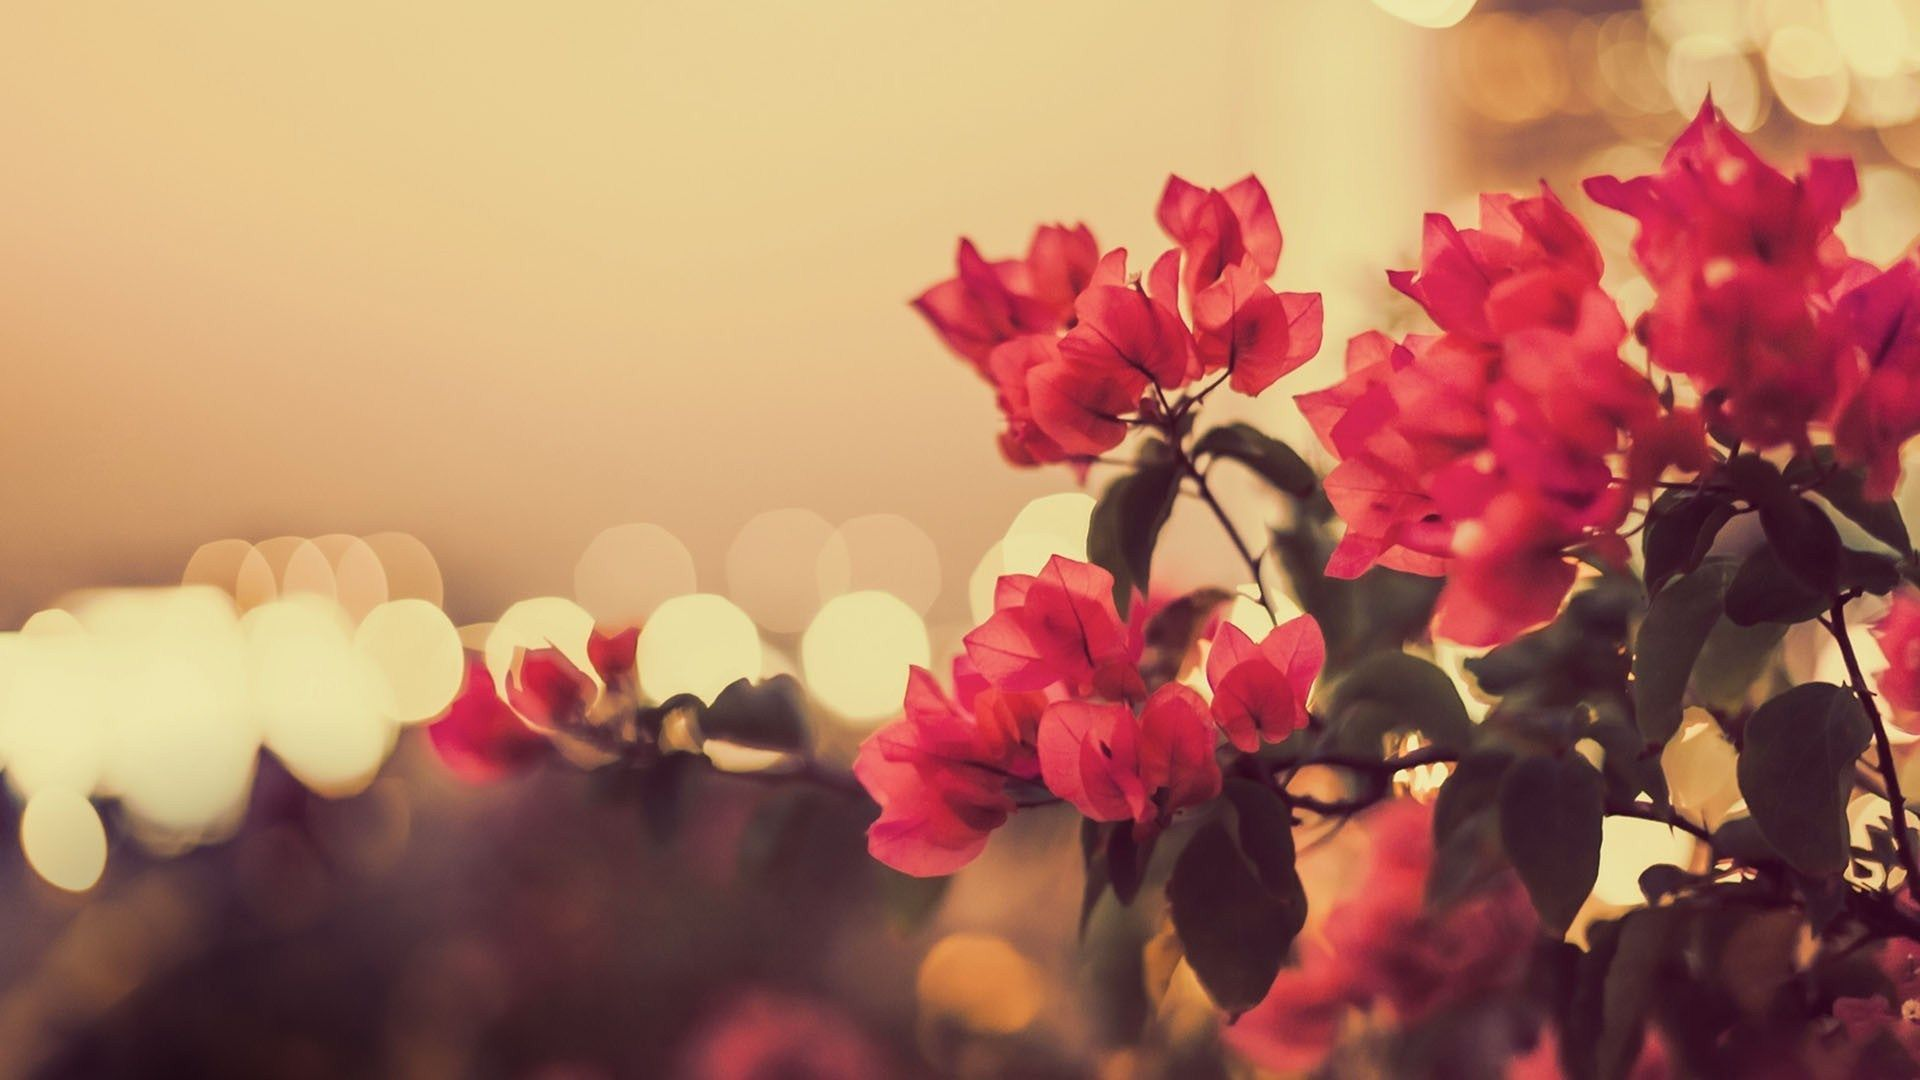 Vintage Flowers Photography Wallpapers Top Free Vintage Flowers